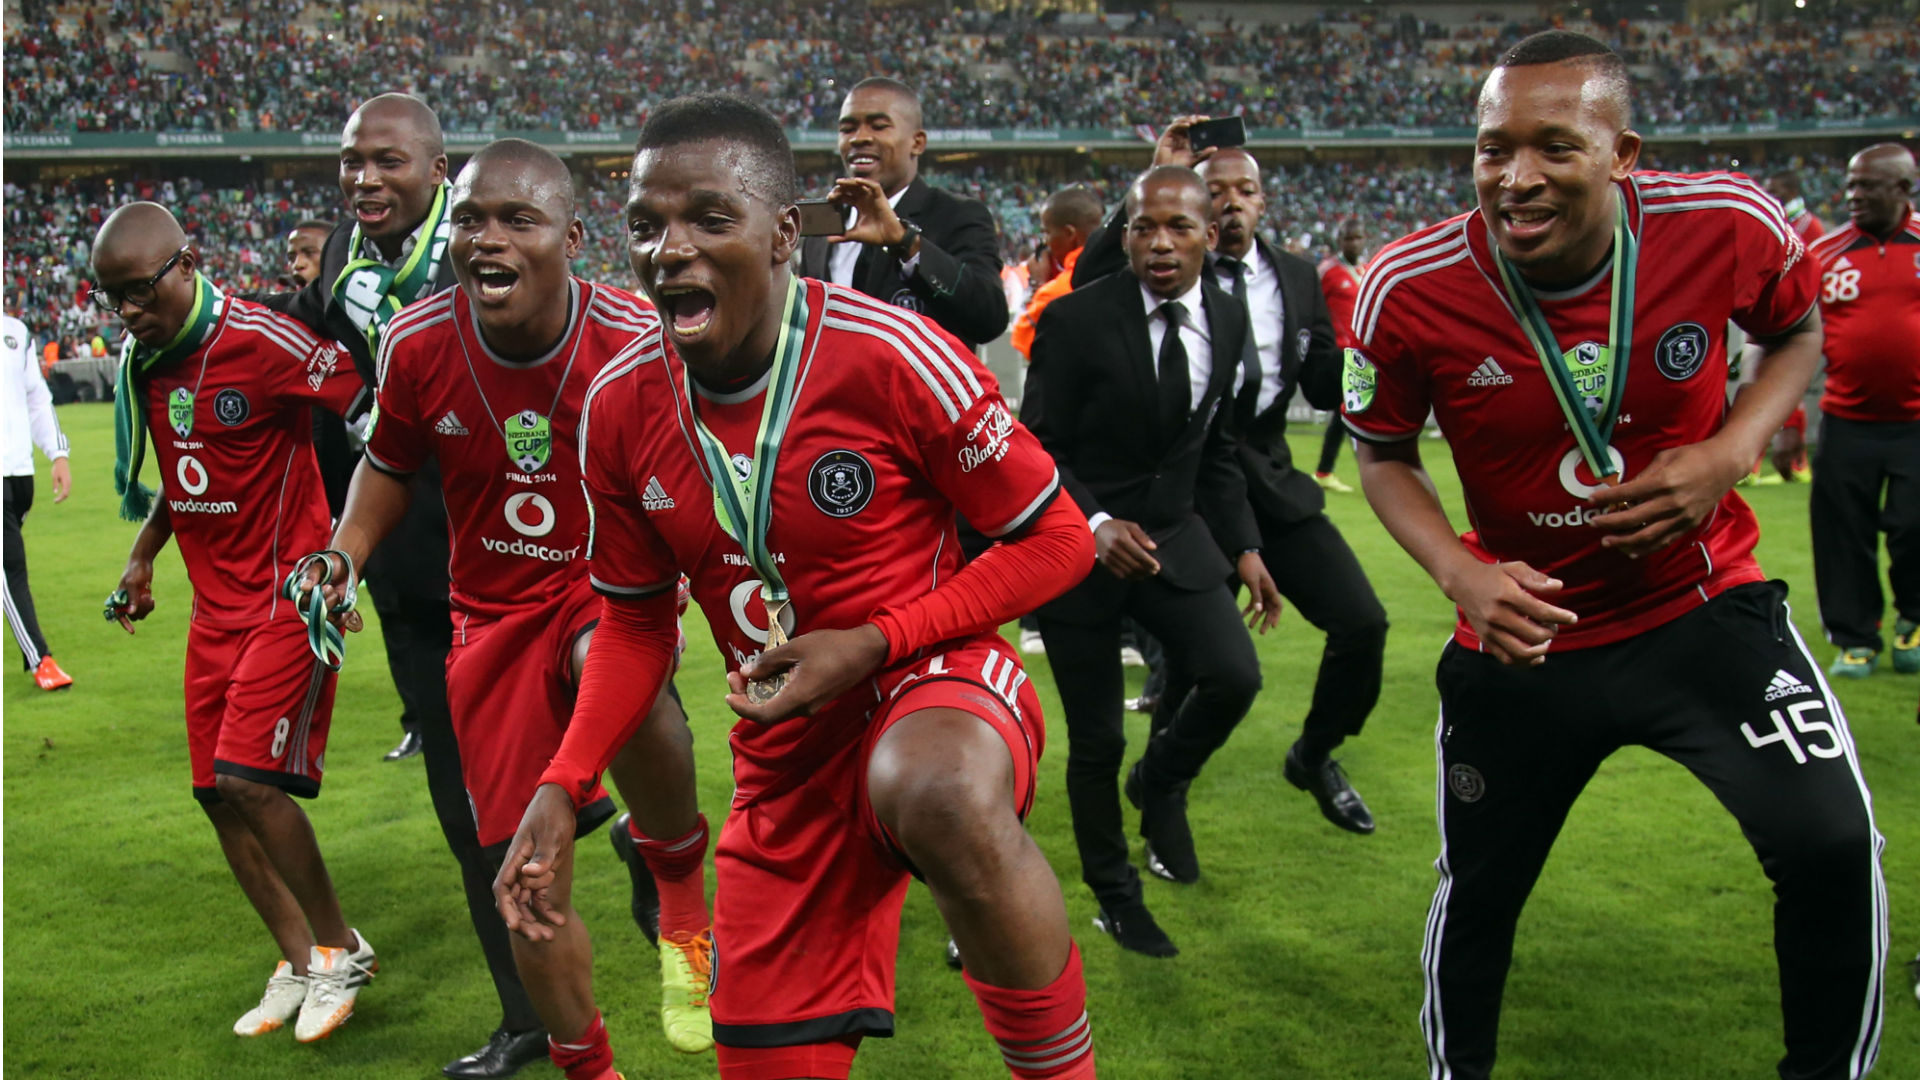 Orlando Pirates players celebrate Nedbank Cup final win